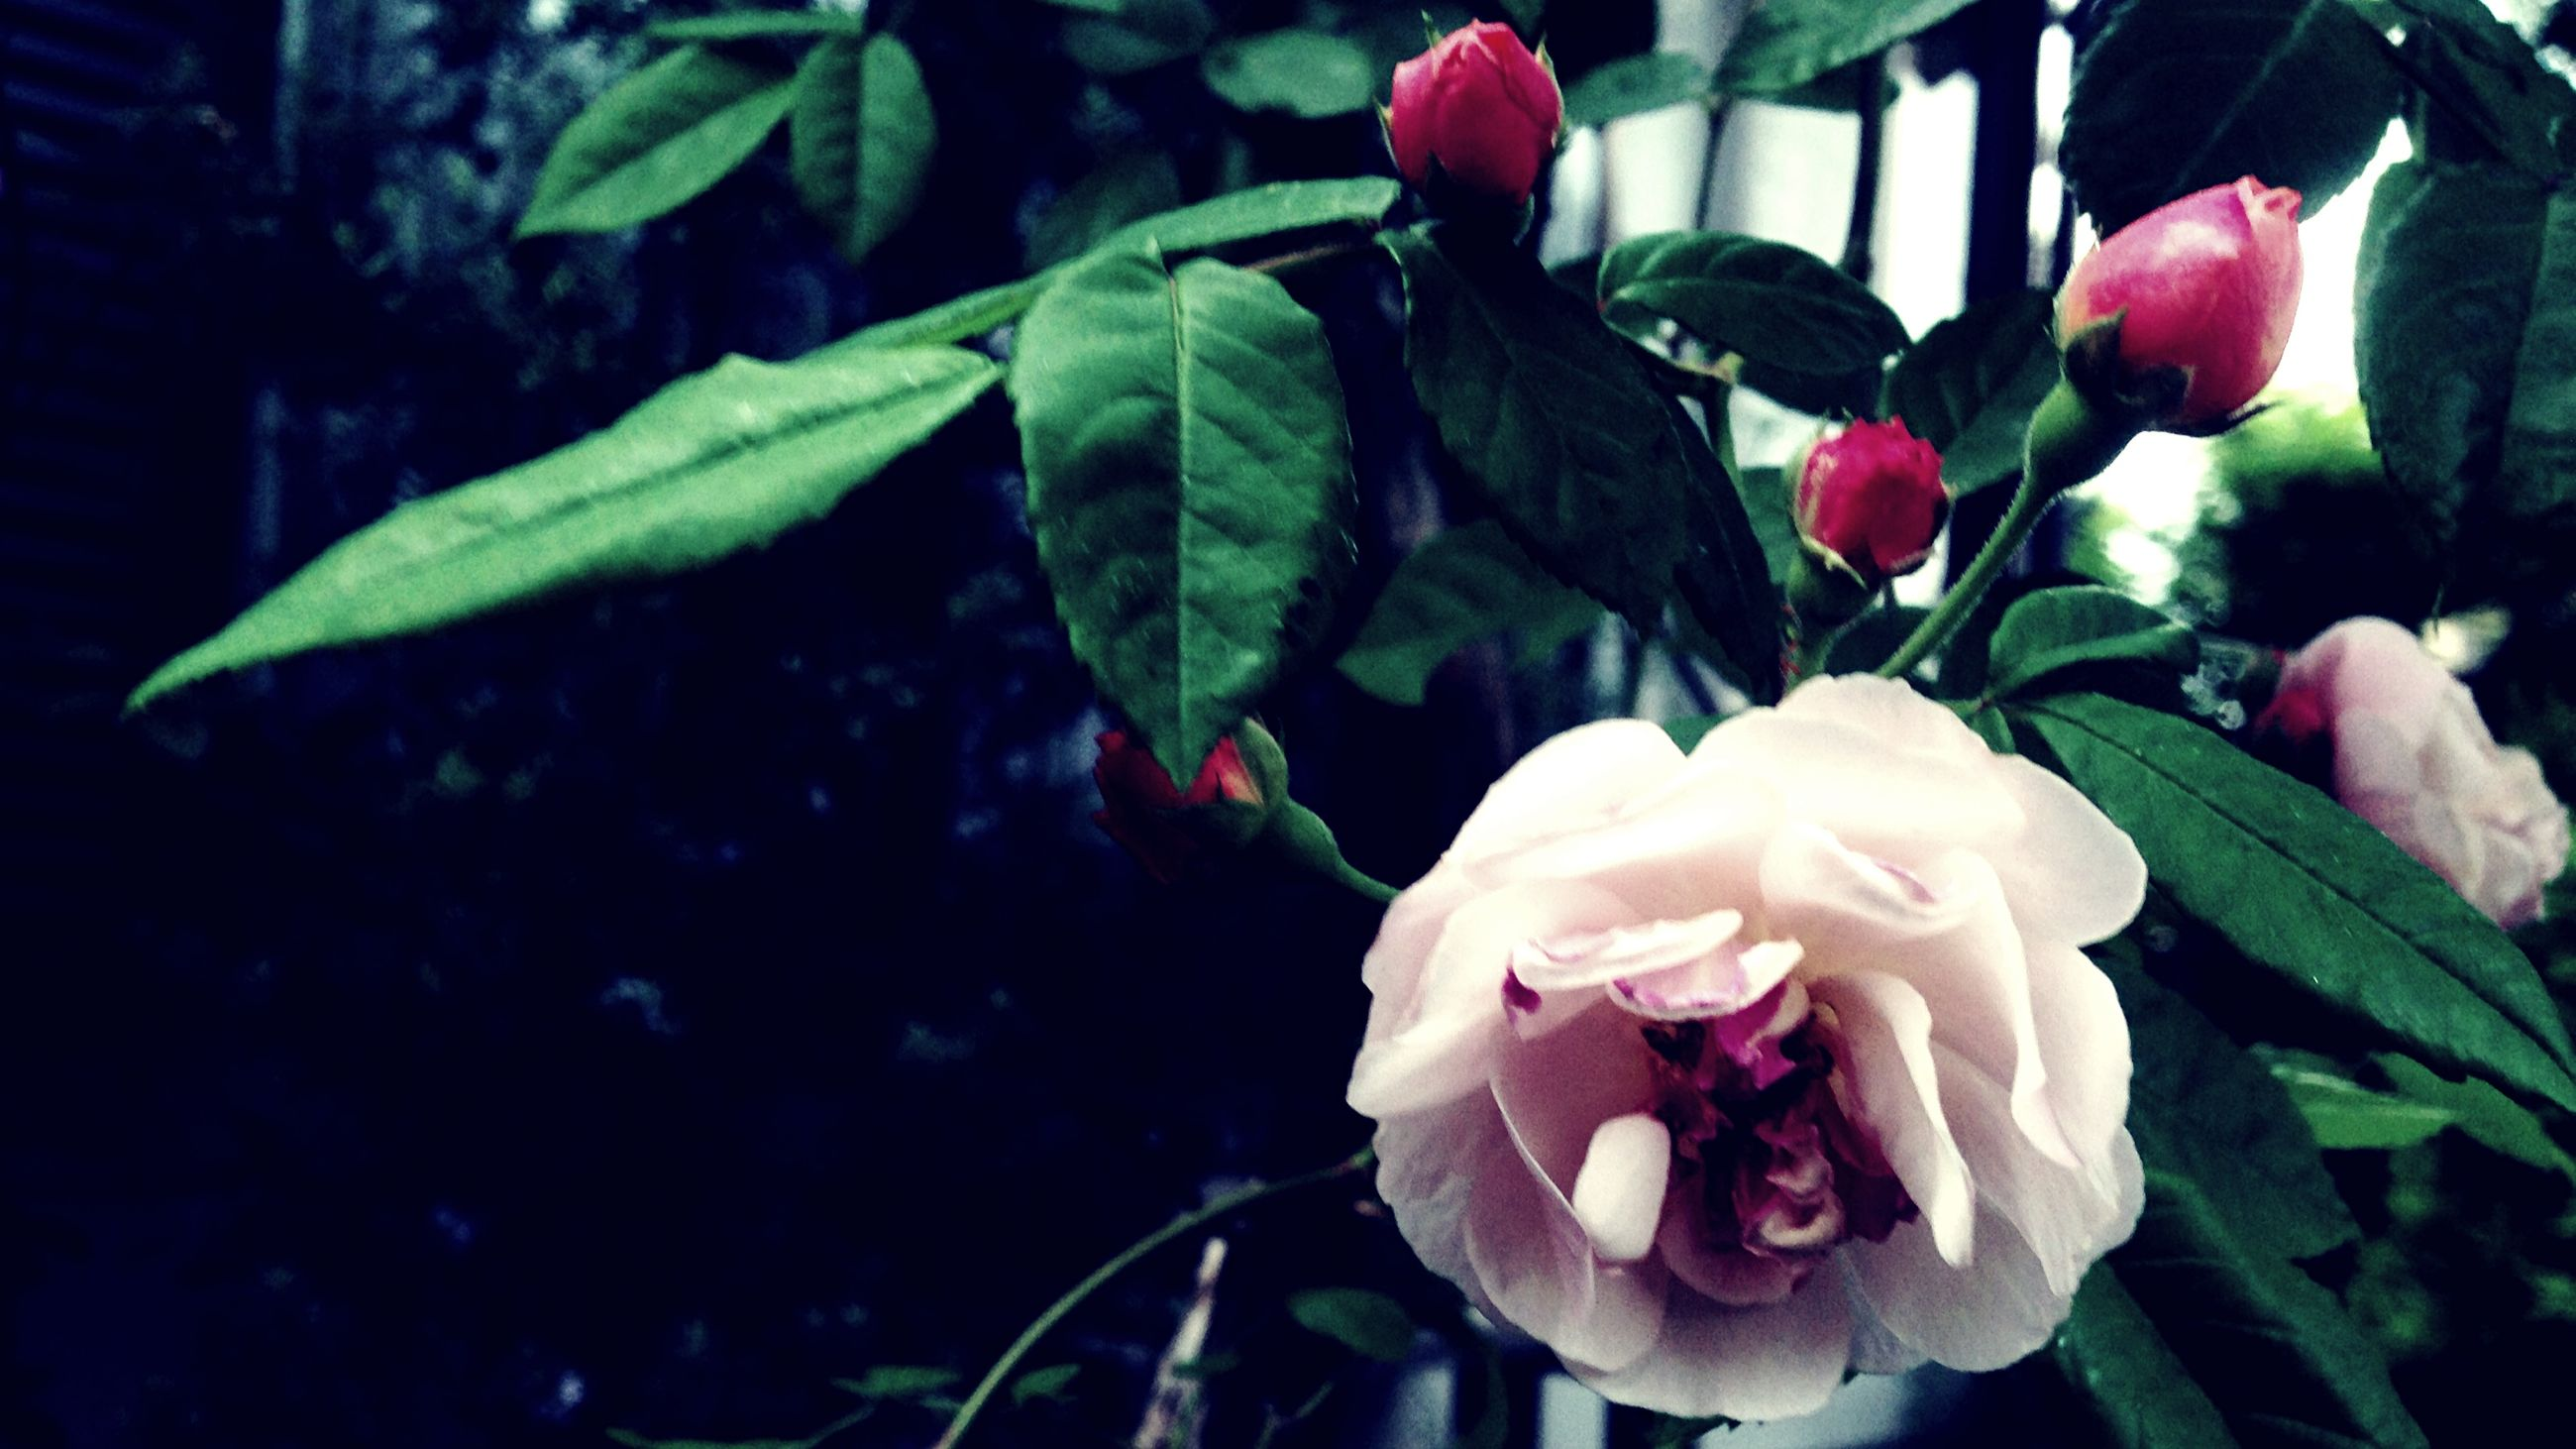 flower, petal, freshness, fragility, flower head, growth, beauty in nature, plant, leaf, close-up, blooming, nature, rose - flower, focus on foreground, pink color, in bloom, day, high angle view, no people, outdoors